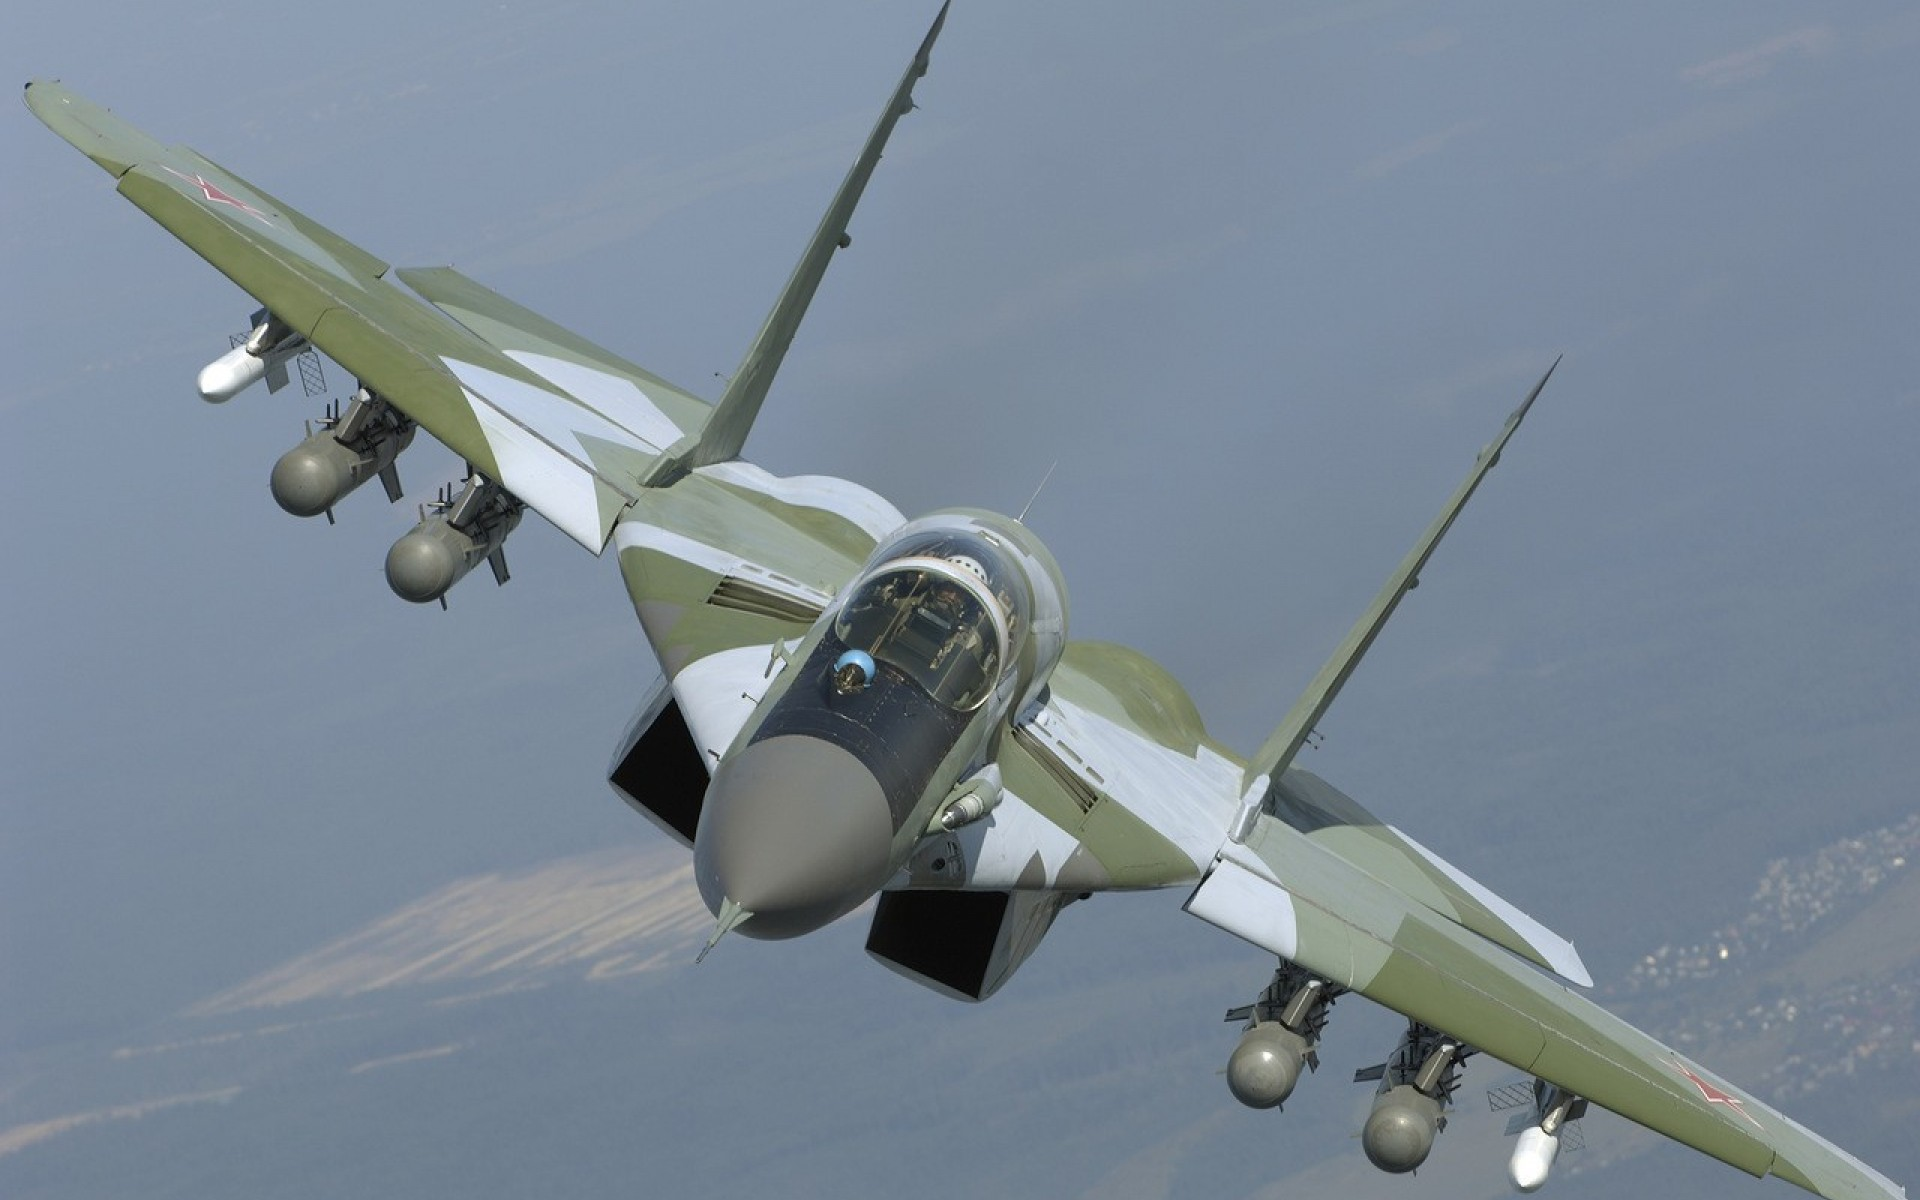 airplane Fighter jet mig mig 29 Military plane russian